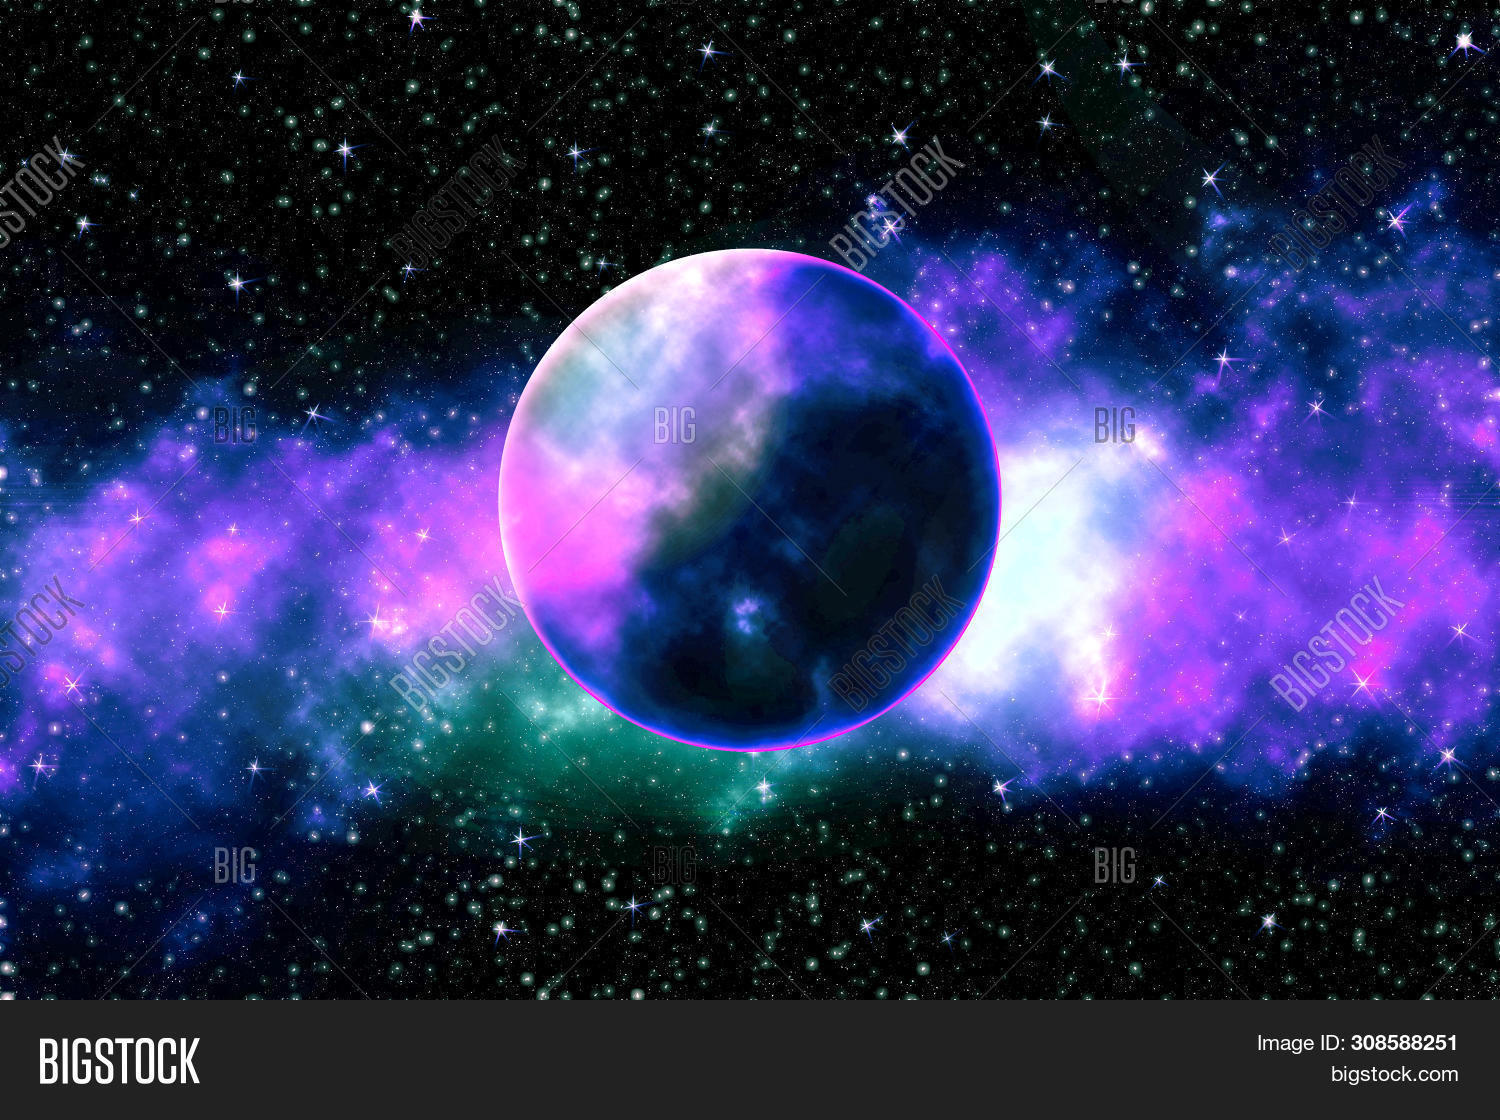 Colors Deep Space Image Photo Free Trial Bigstock